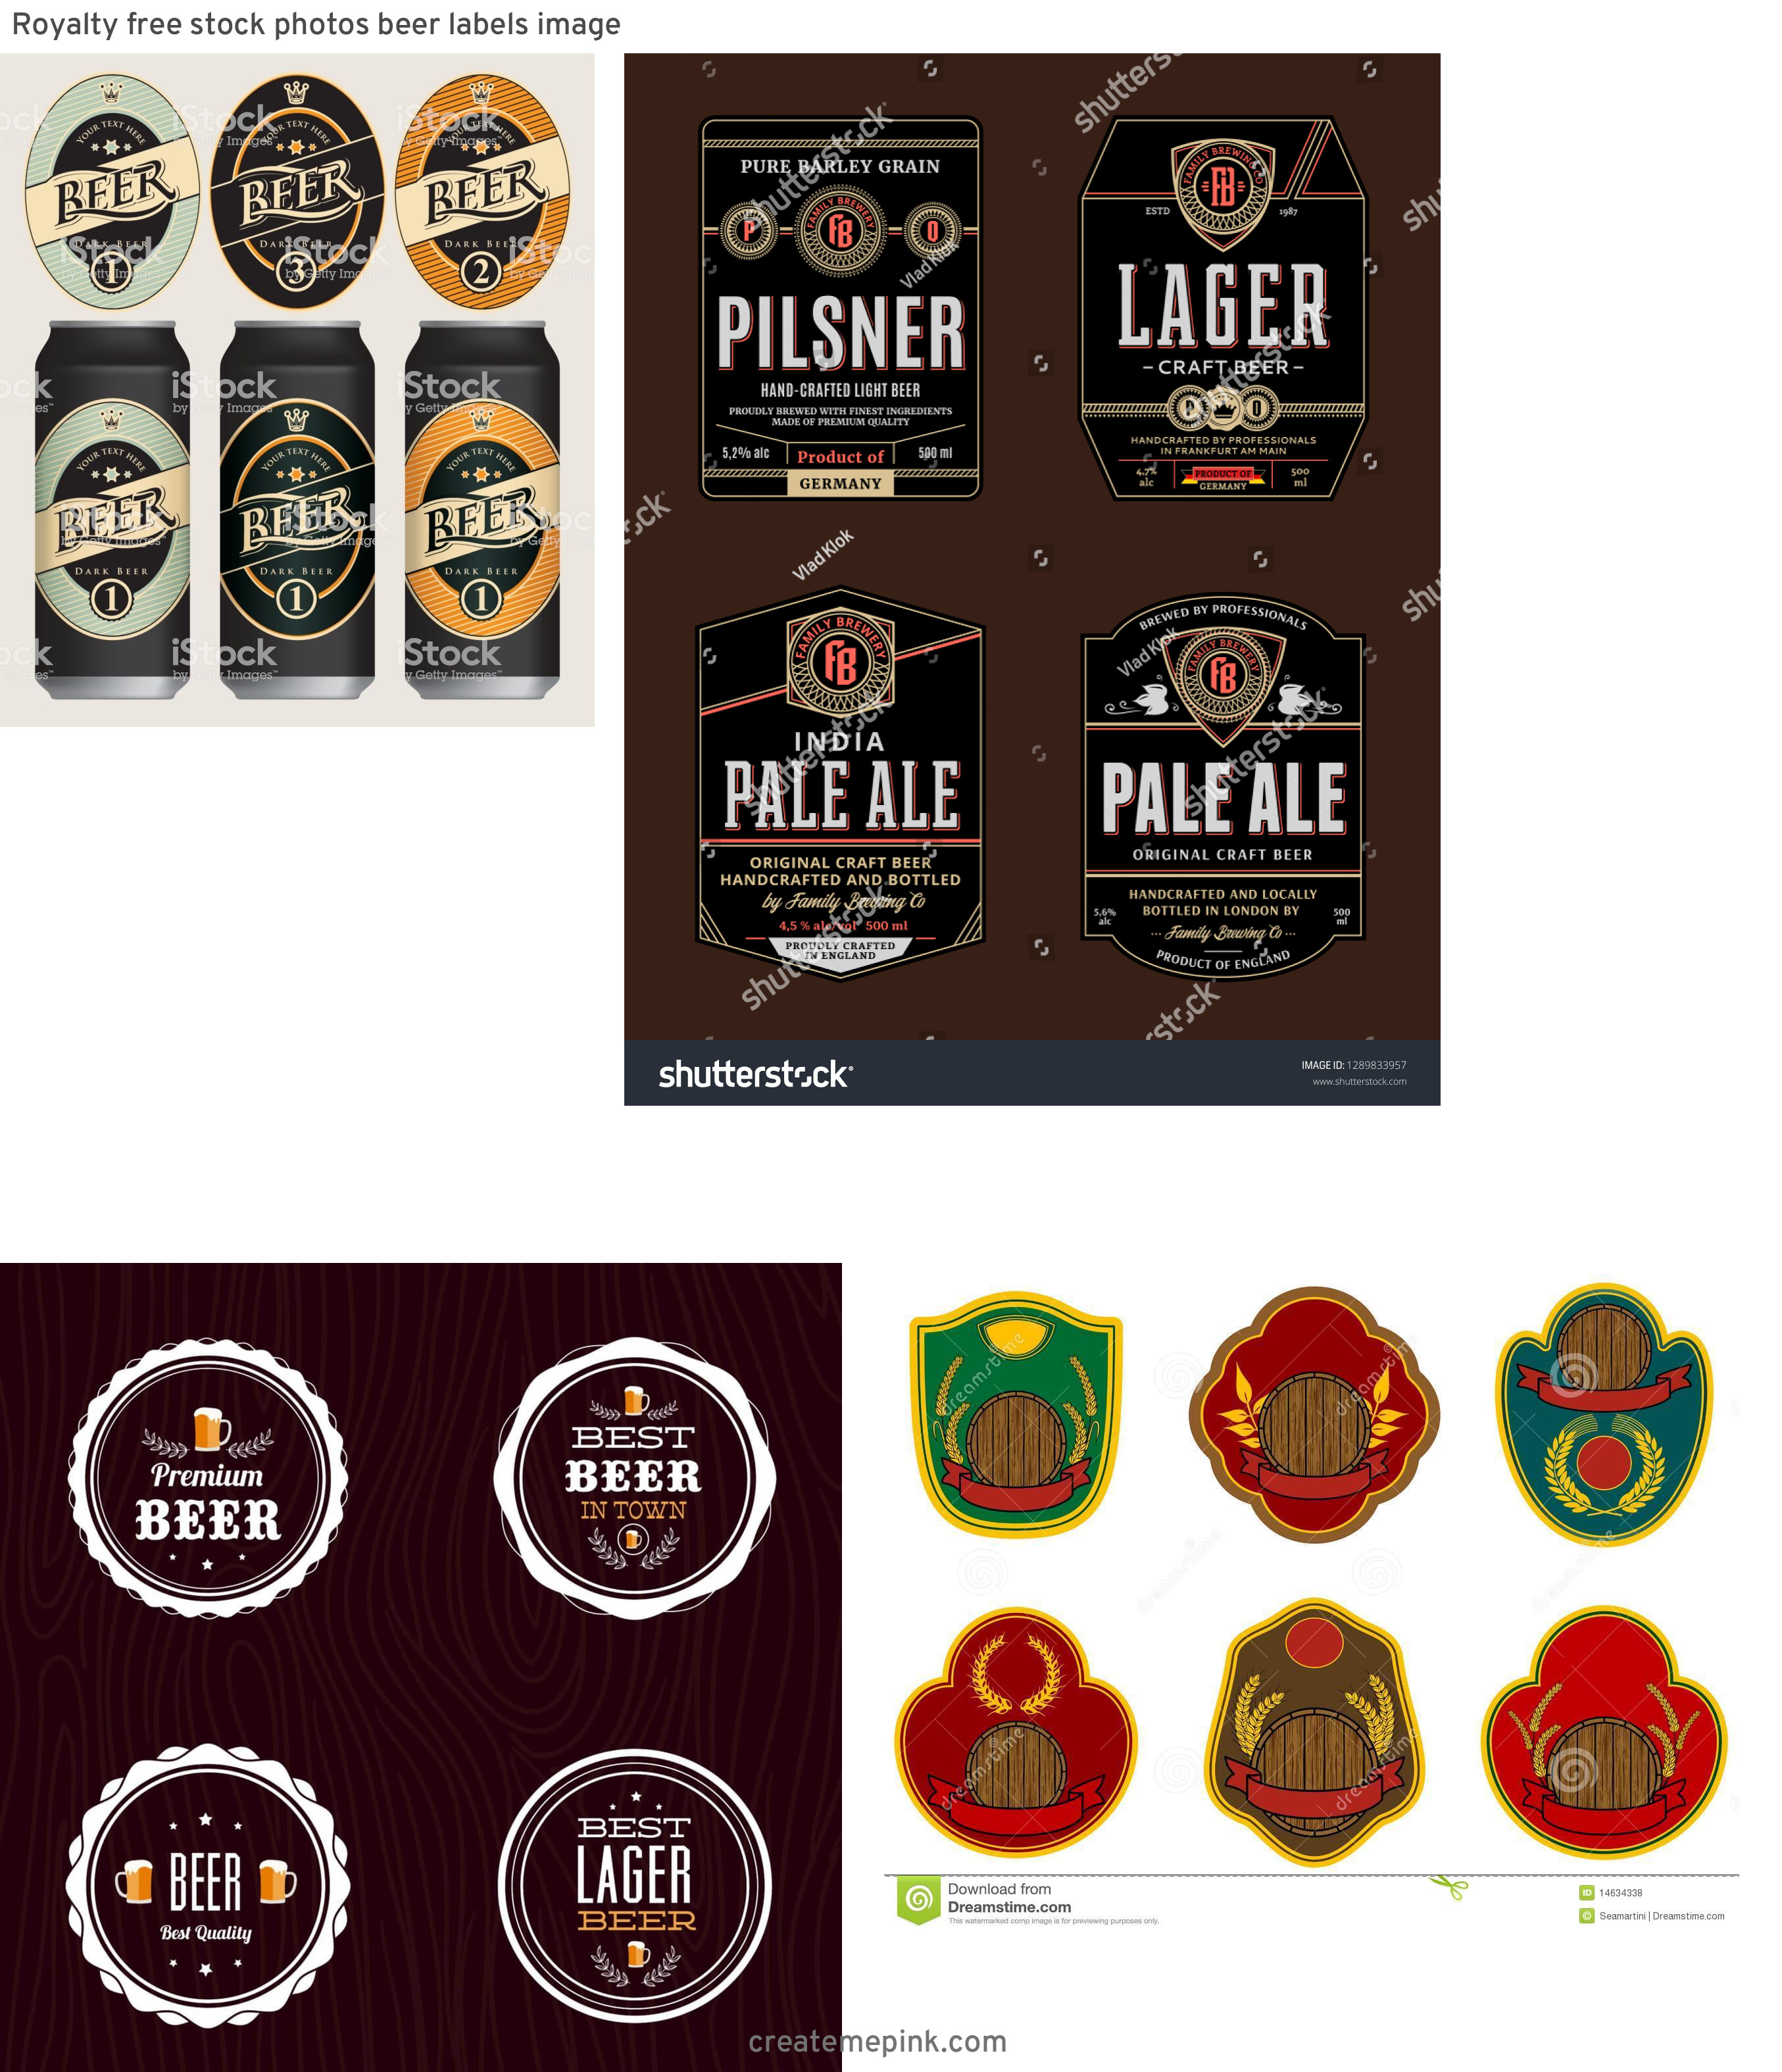 Custom Beer Labels Vector Graphics: Royalty Free Stock Photos Beer Labels Image